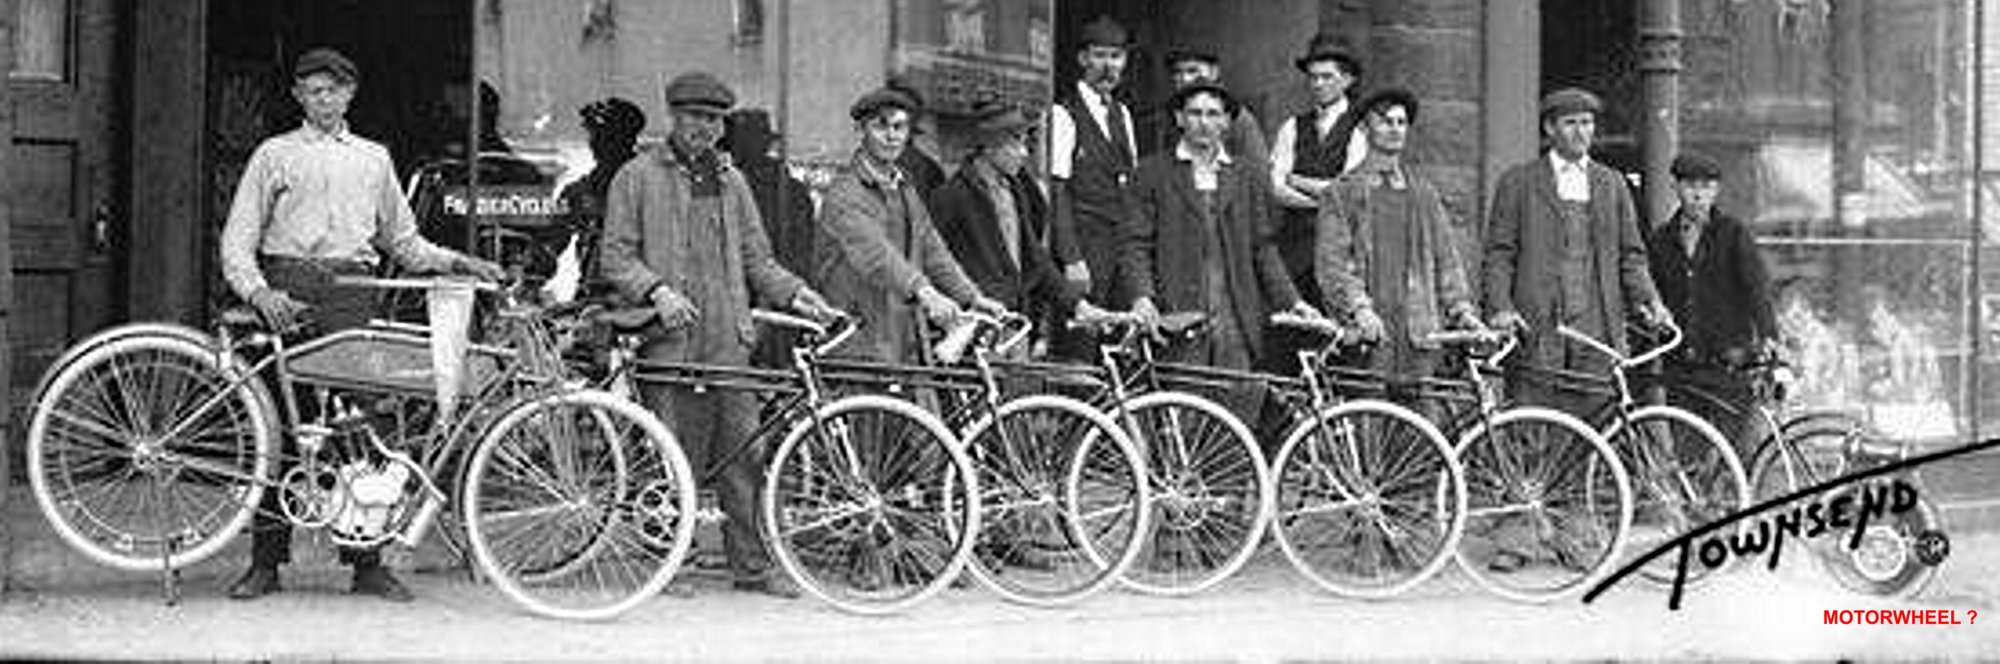 Frazier Cycle Company.jpg